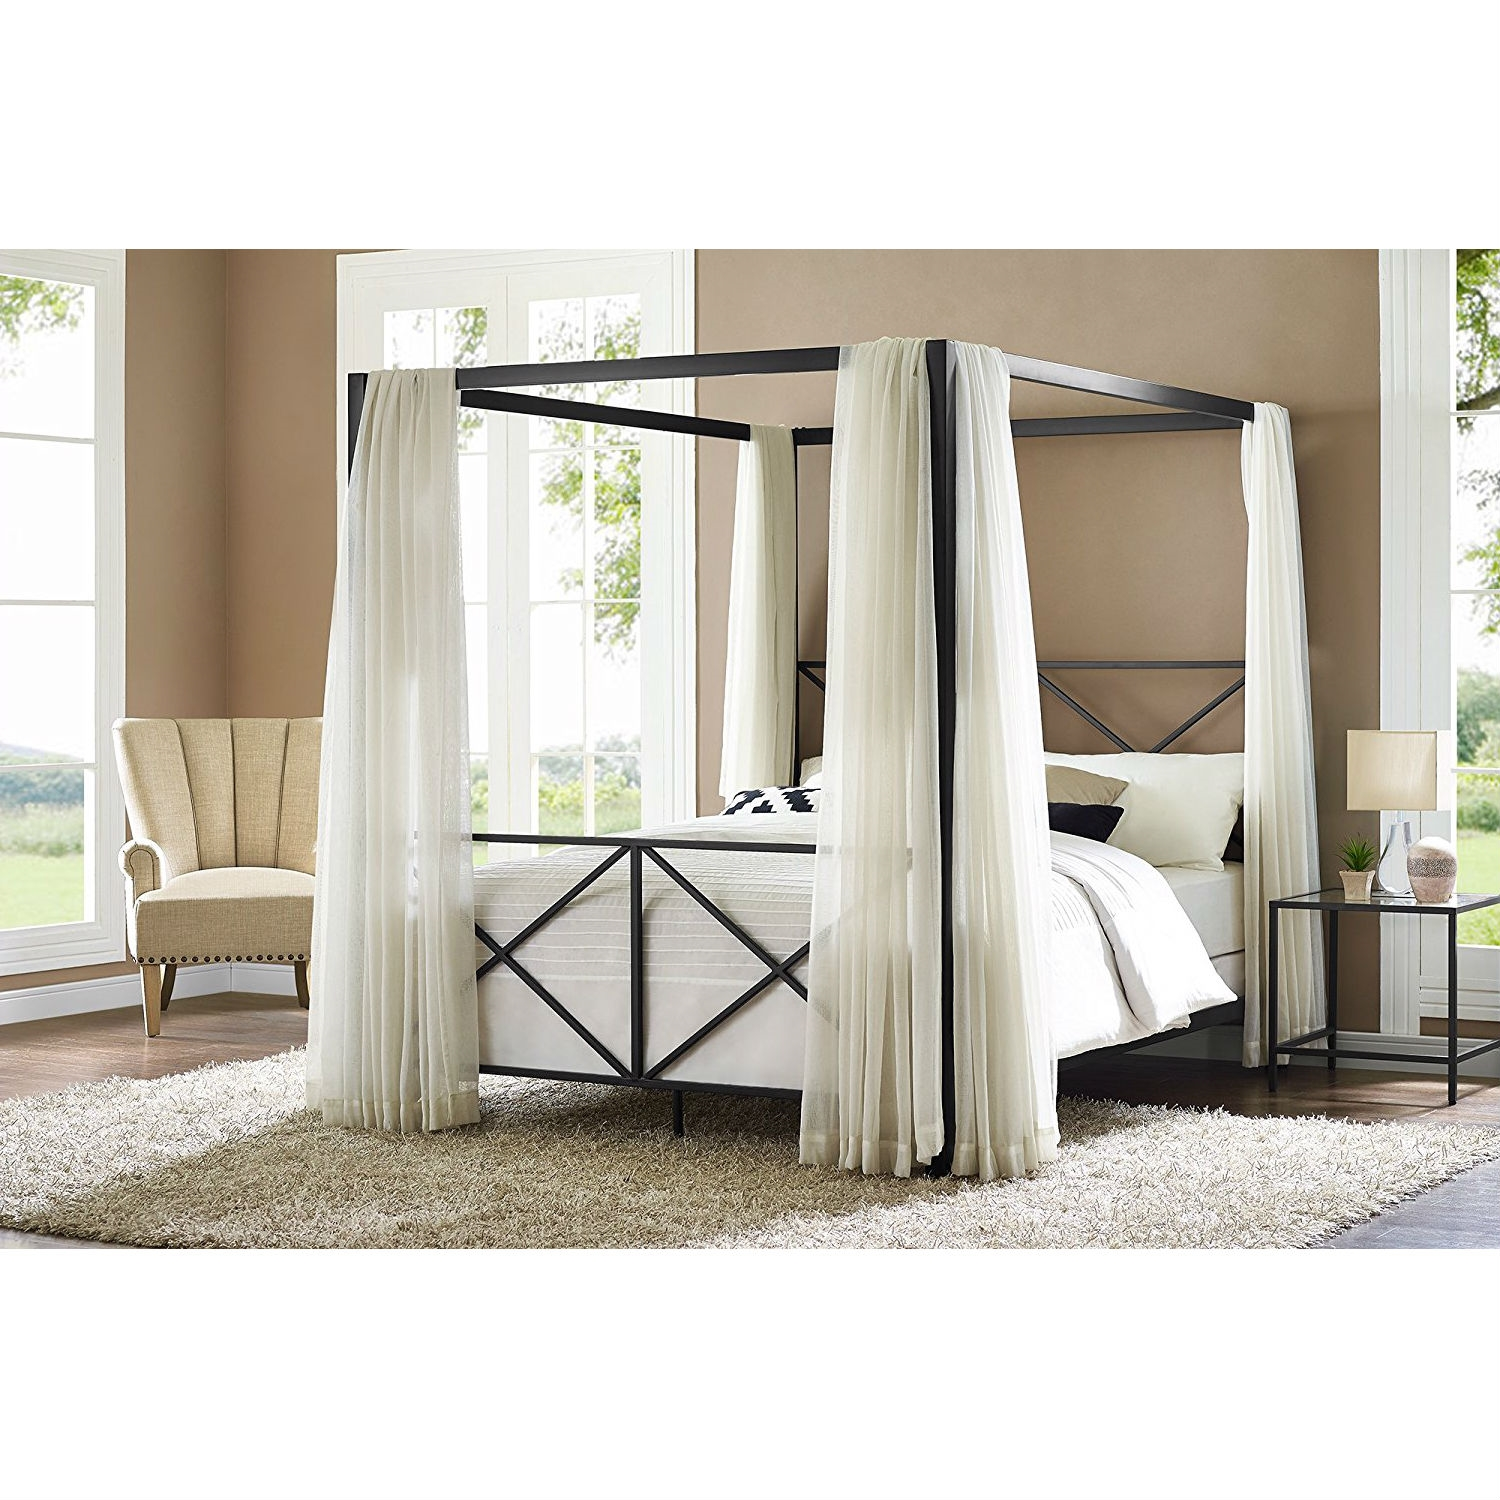 Queen size 4-Post Metal Canopy Bed Frame in Black   FastFurnishings.com